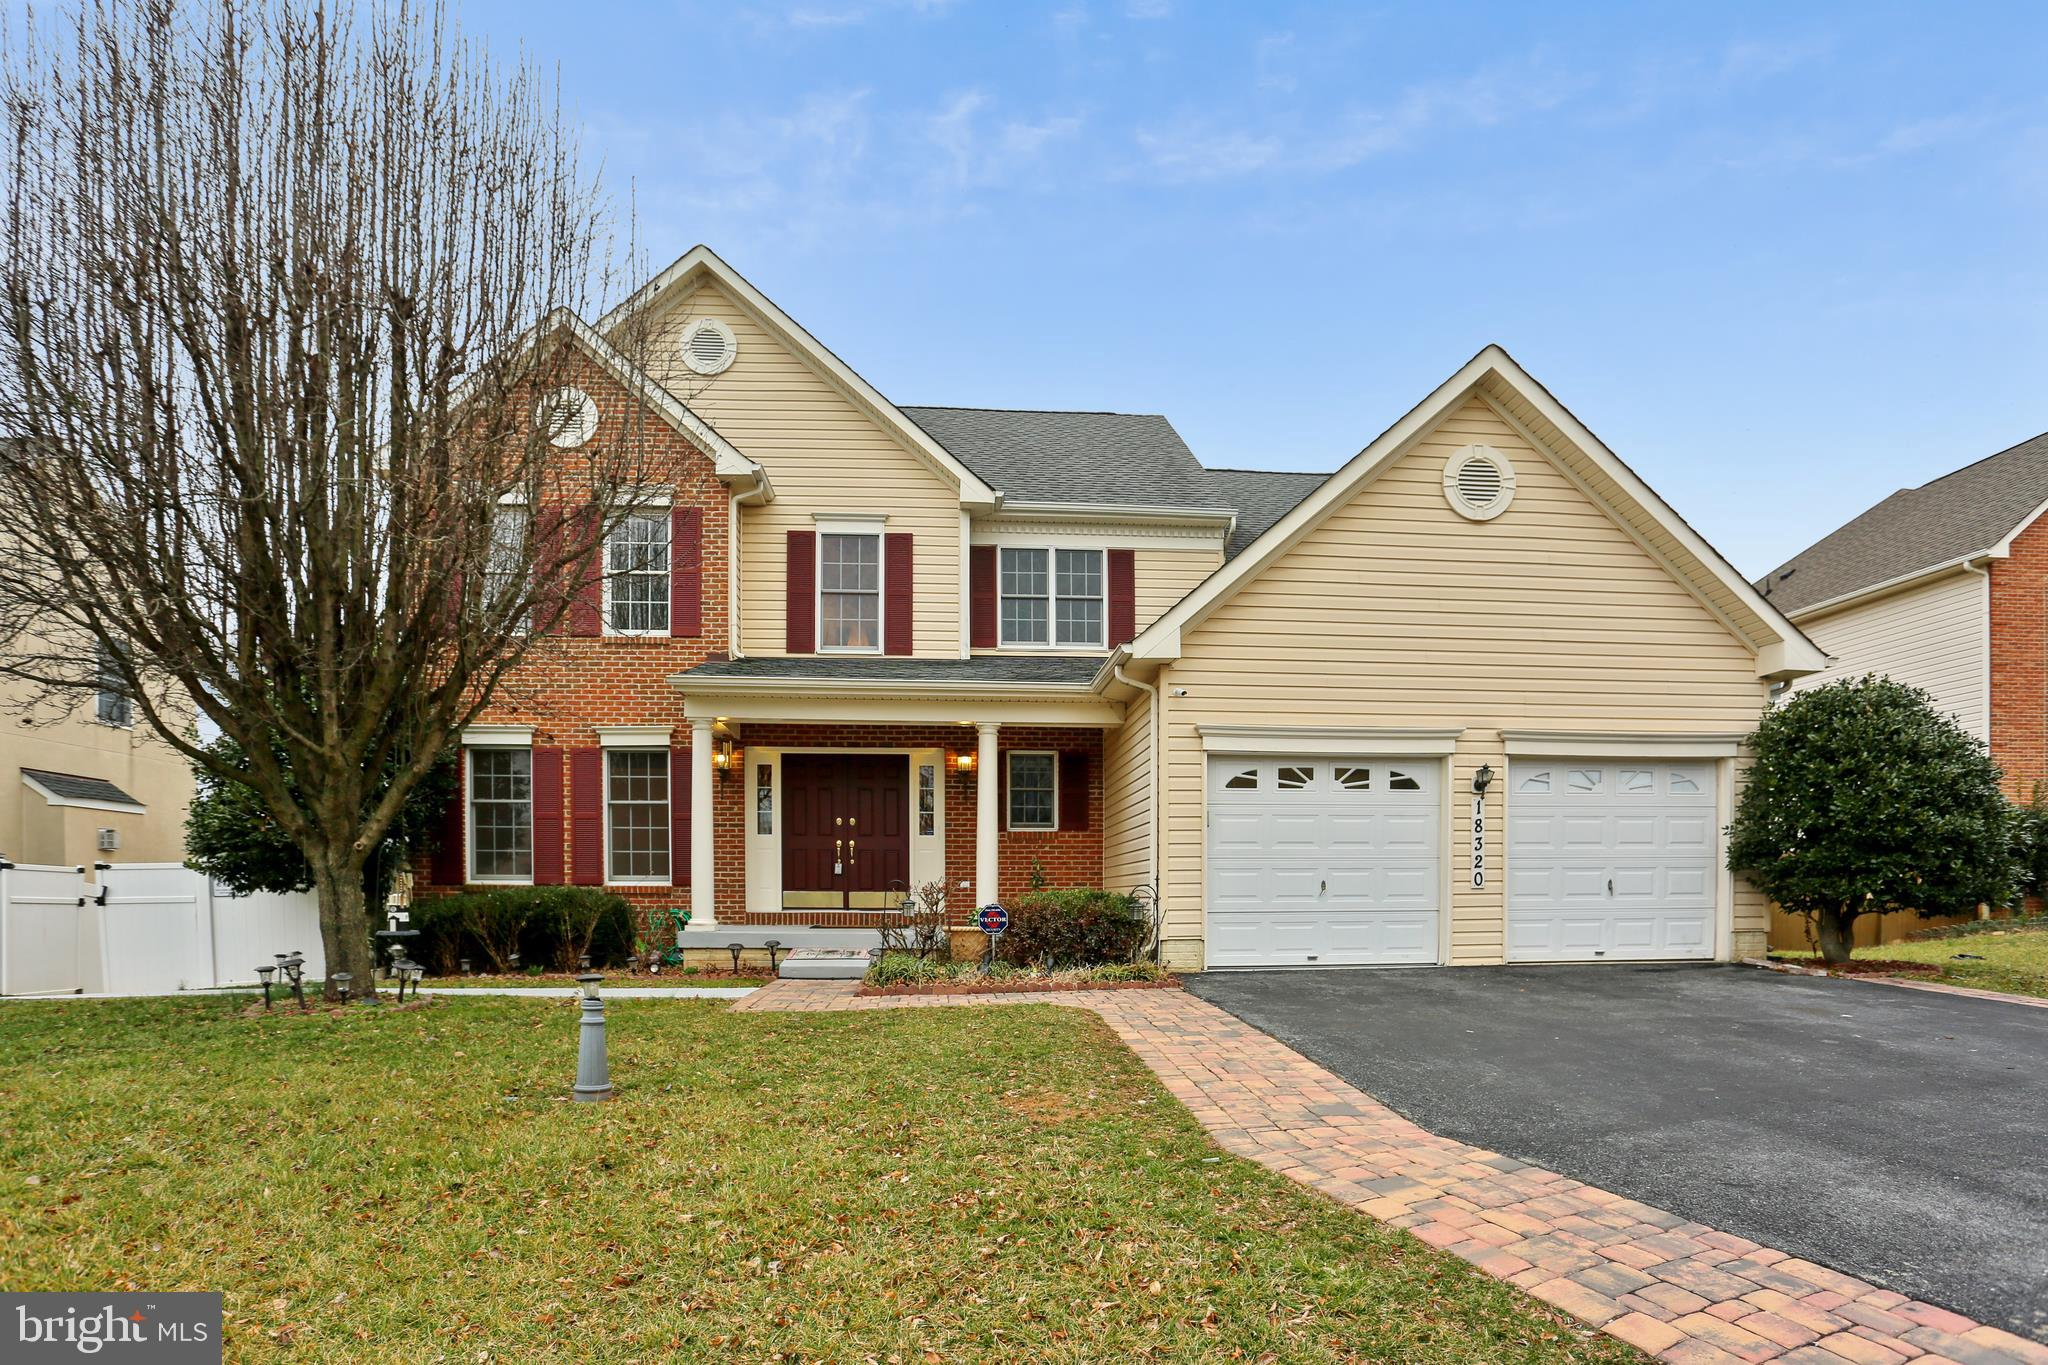 18320 TAPWOOD ROAD, BOYDS, MD 20841